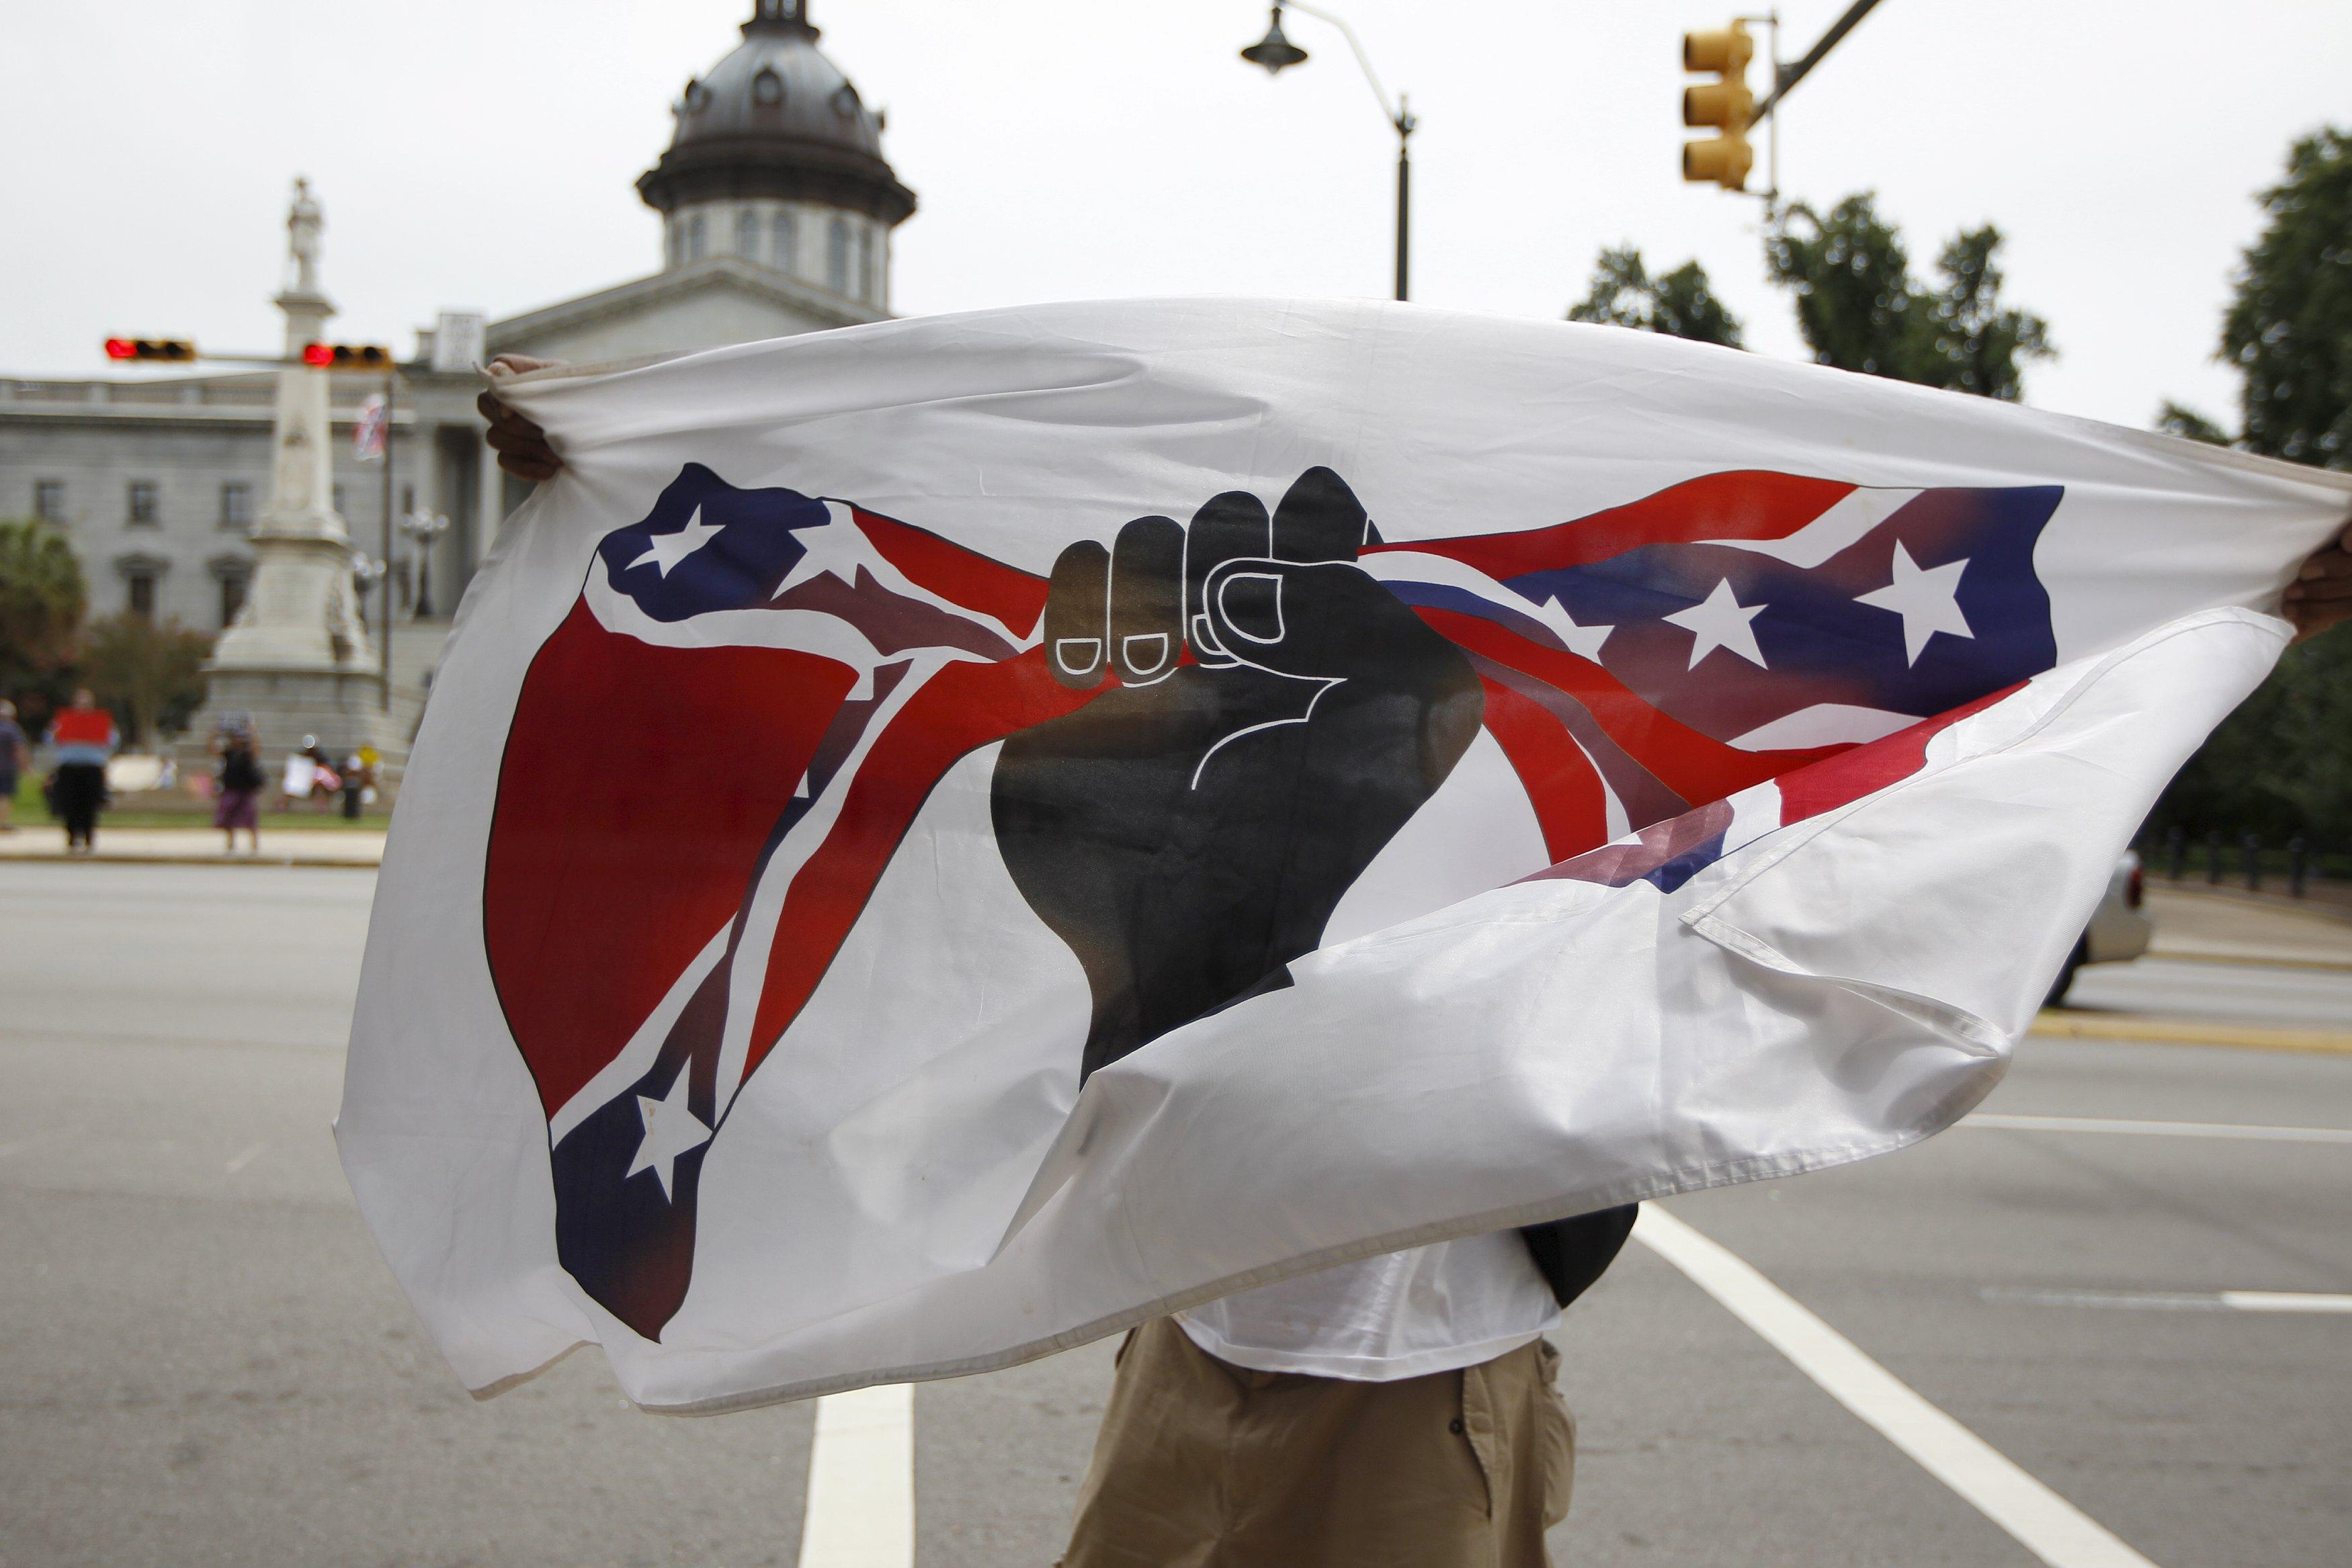 Confederate flag protest in South Carolina